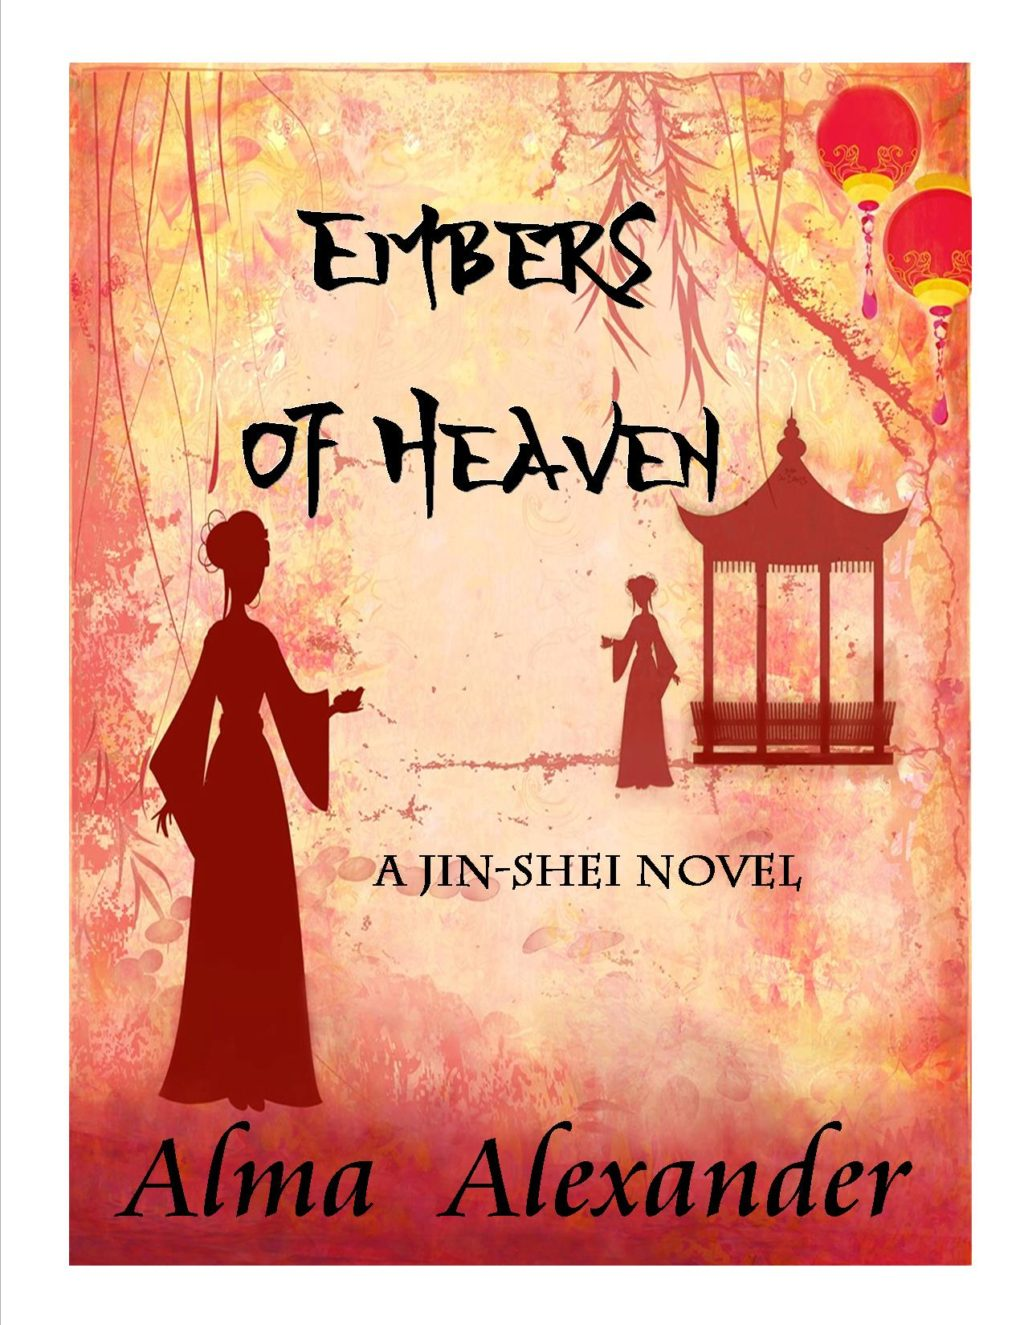 Second US Embers of Heaven cover